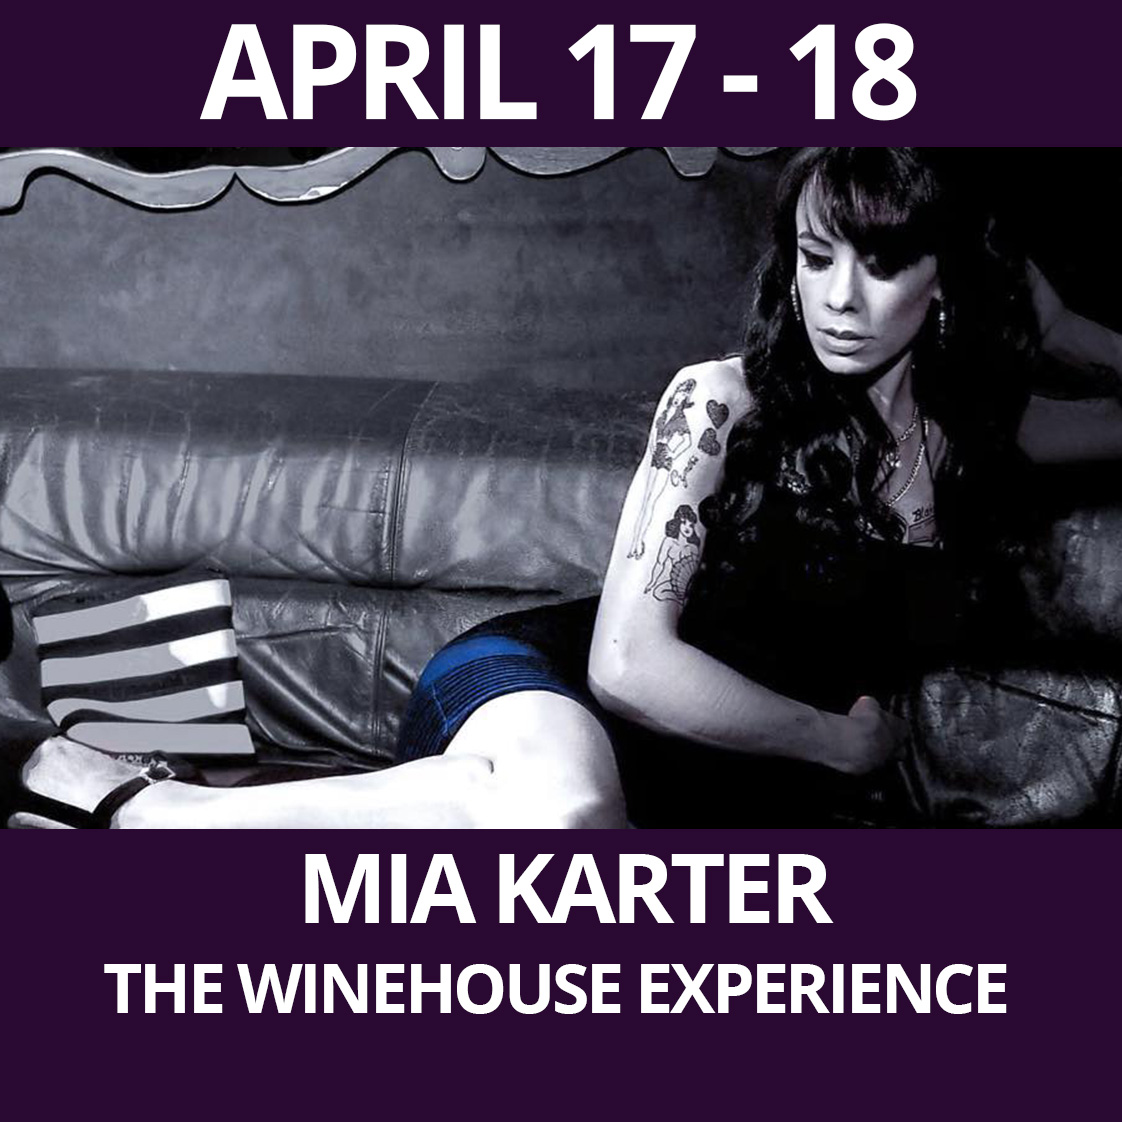 Mia Karter: The Winehouse Experience Presented at The Purple Room Palm Springs